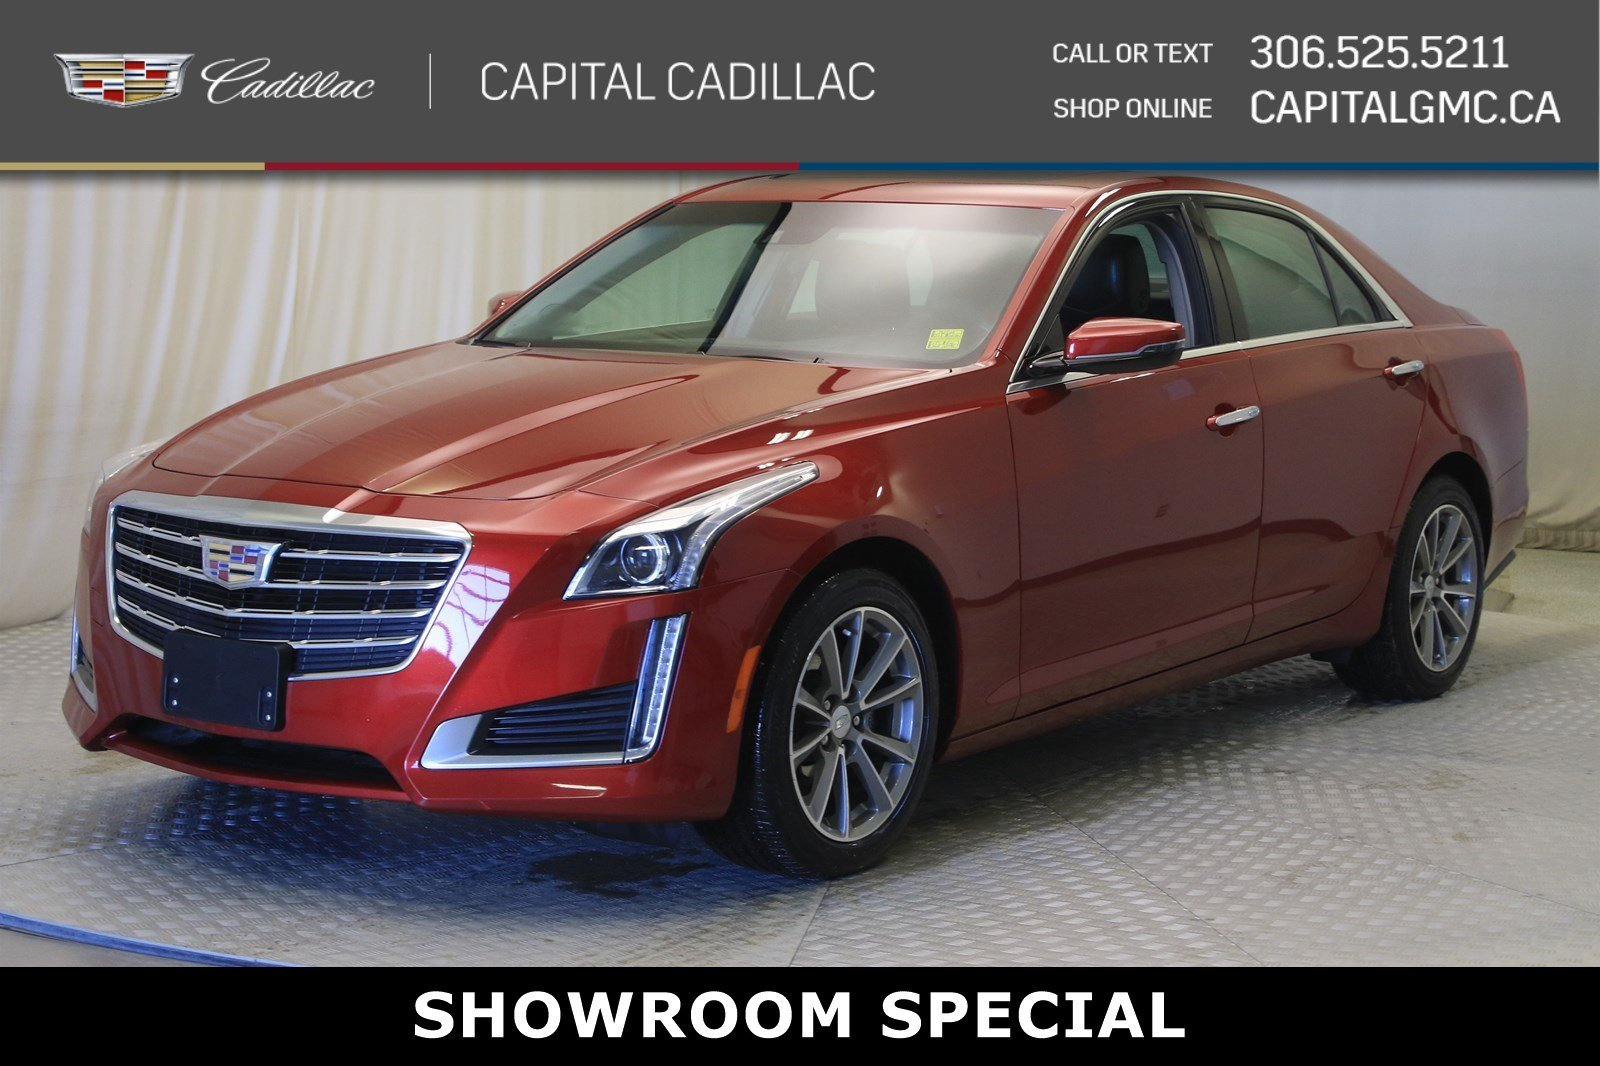 Certified Pre-Owned 2018 Cadillac CTS Sedan Luxury AWD*NAV*LEATHER*SUNROOF*